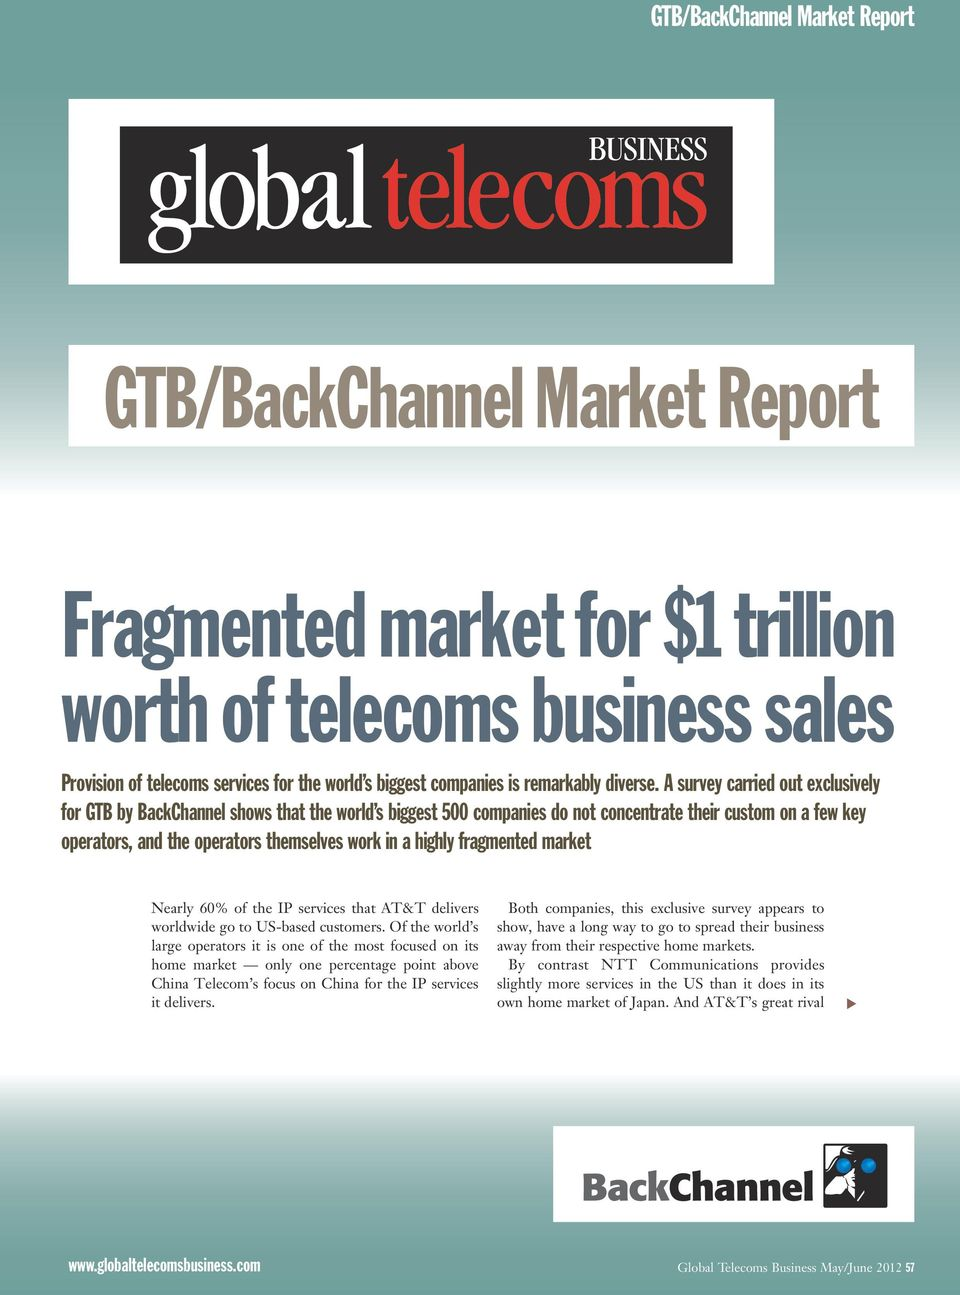 A survey carried out exclusively for GTB by BackChannel shows that the world s biggest 500 companies do not concentrate their custom on a few key operators, and the operators themselves work in a